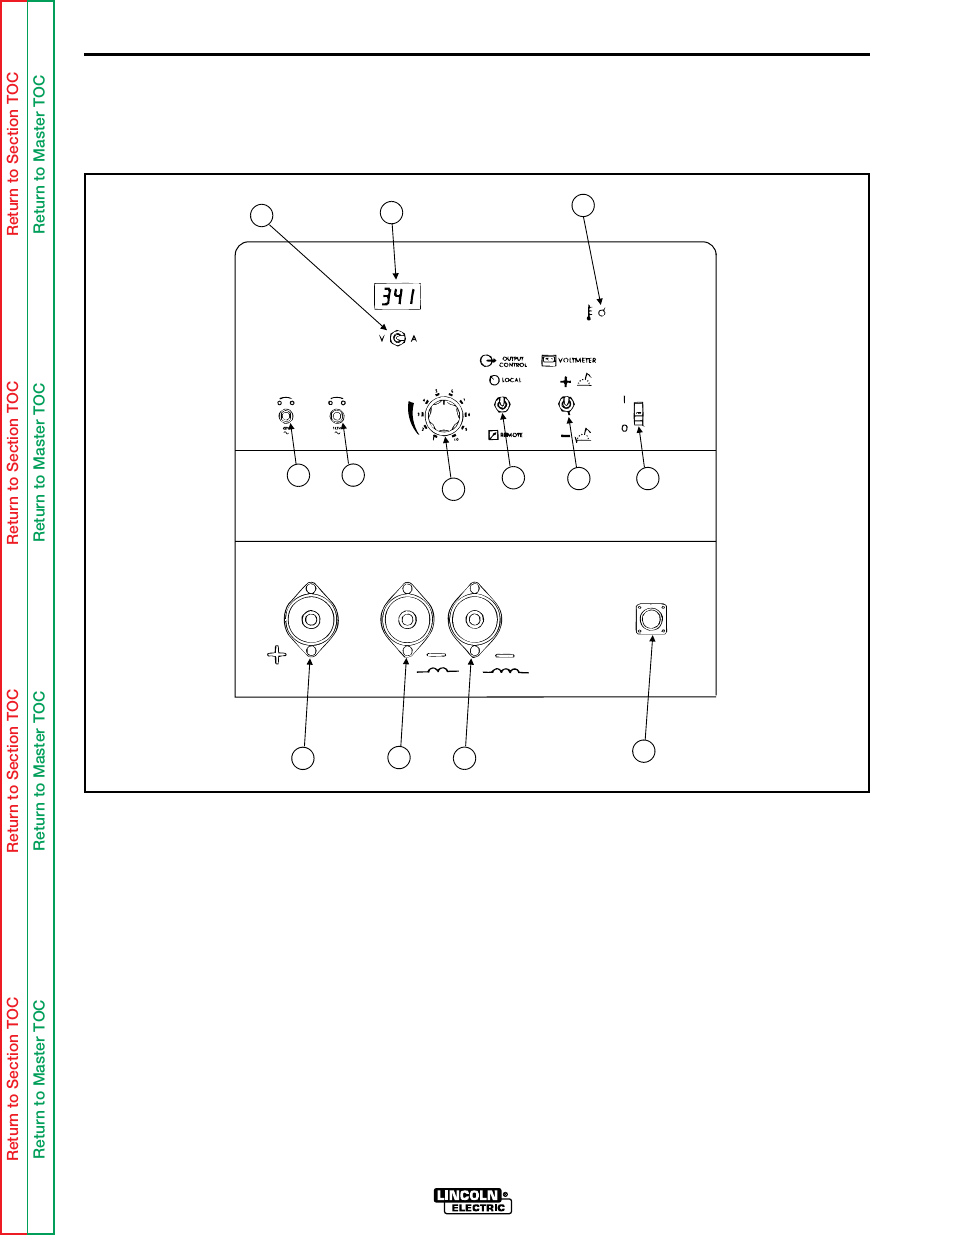 Operation Controls And Settings Lincoln Electric Idealarc Cv 300 Welder Wiring Diagram User Manual Page 20 112